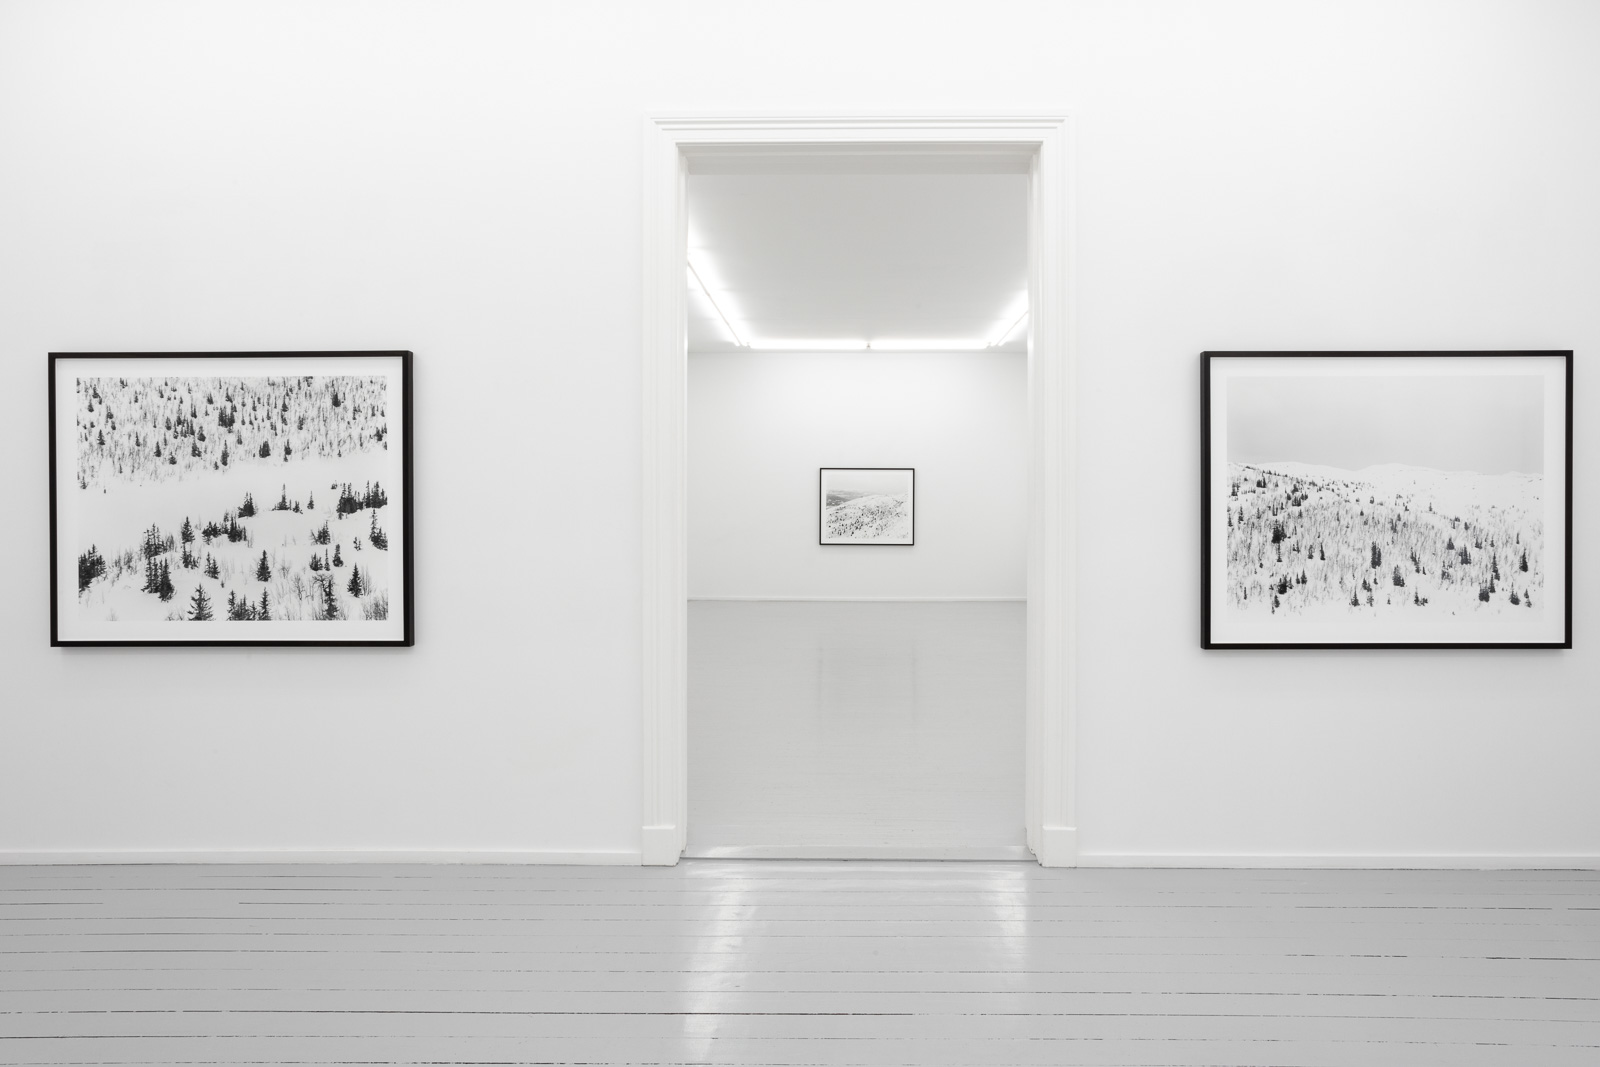 Installation view, Per Berntsen, 'May 1985. Landscapes from Eggedal.' May 15 - June 13, 2020.